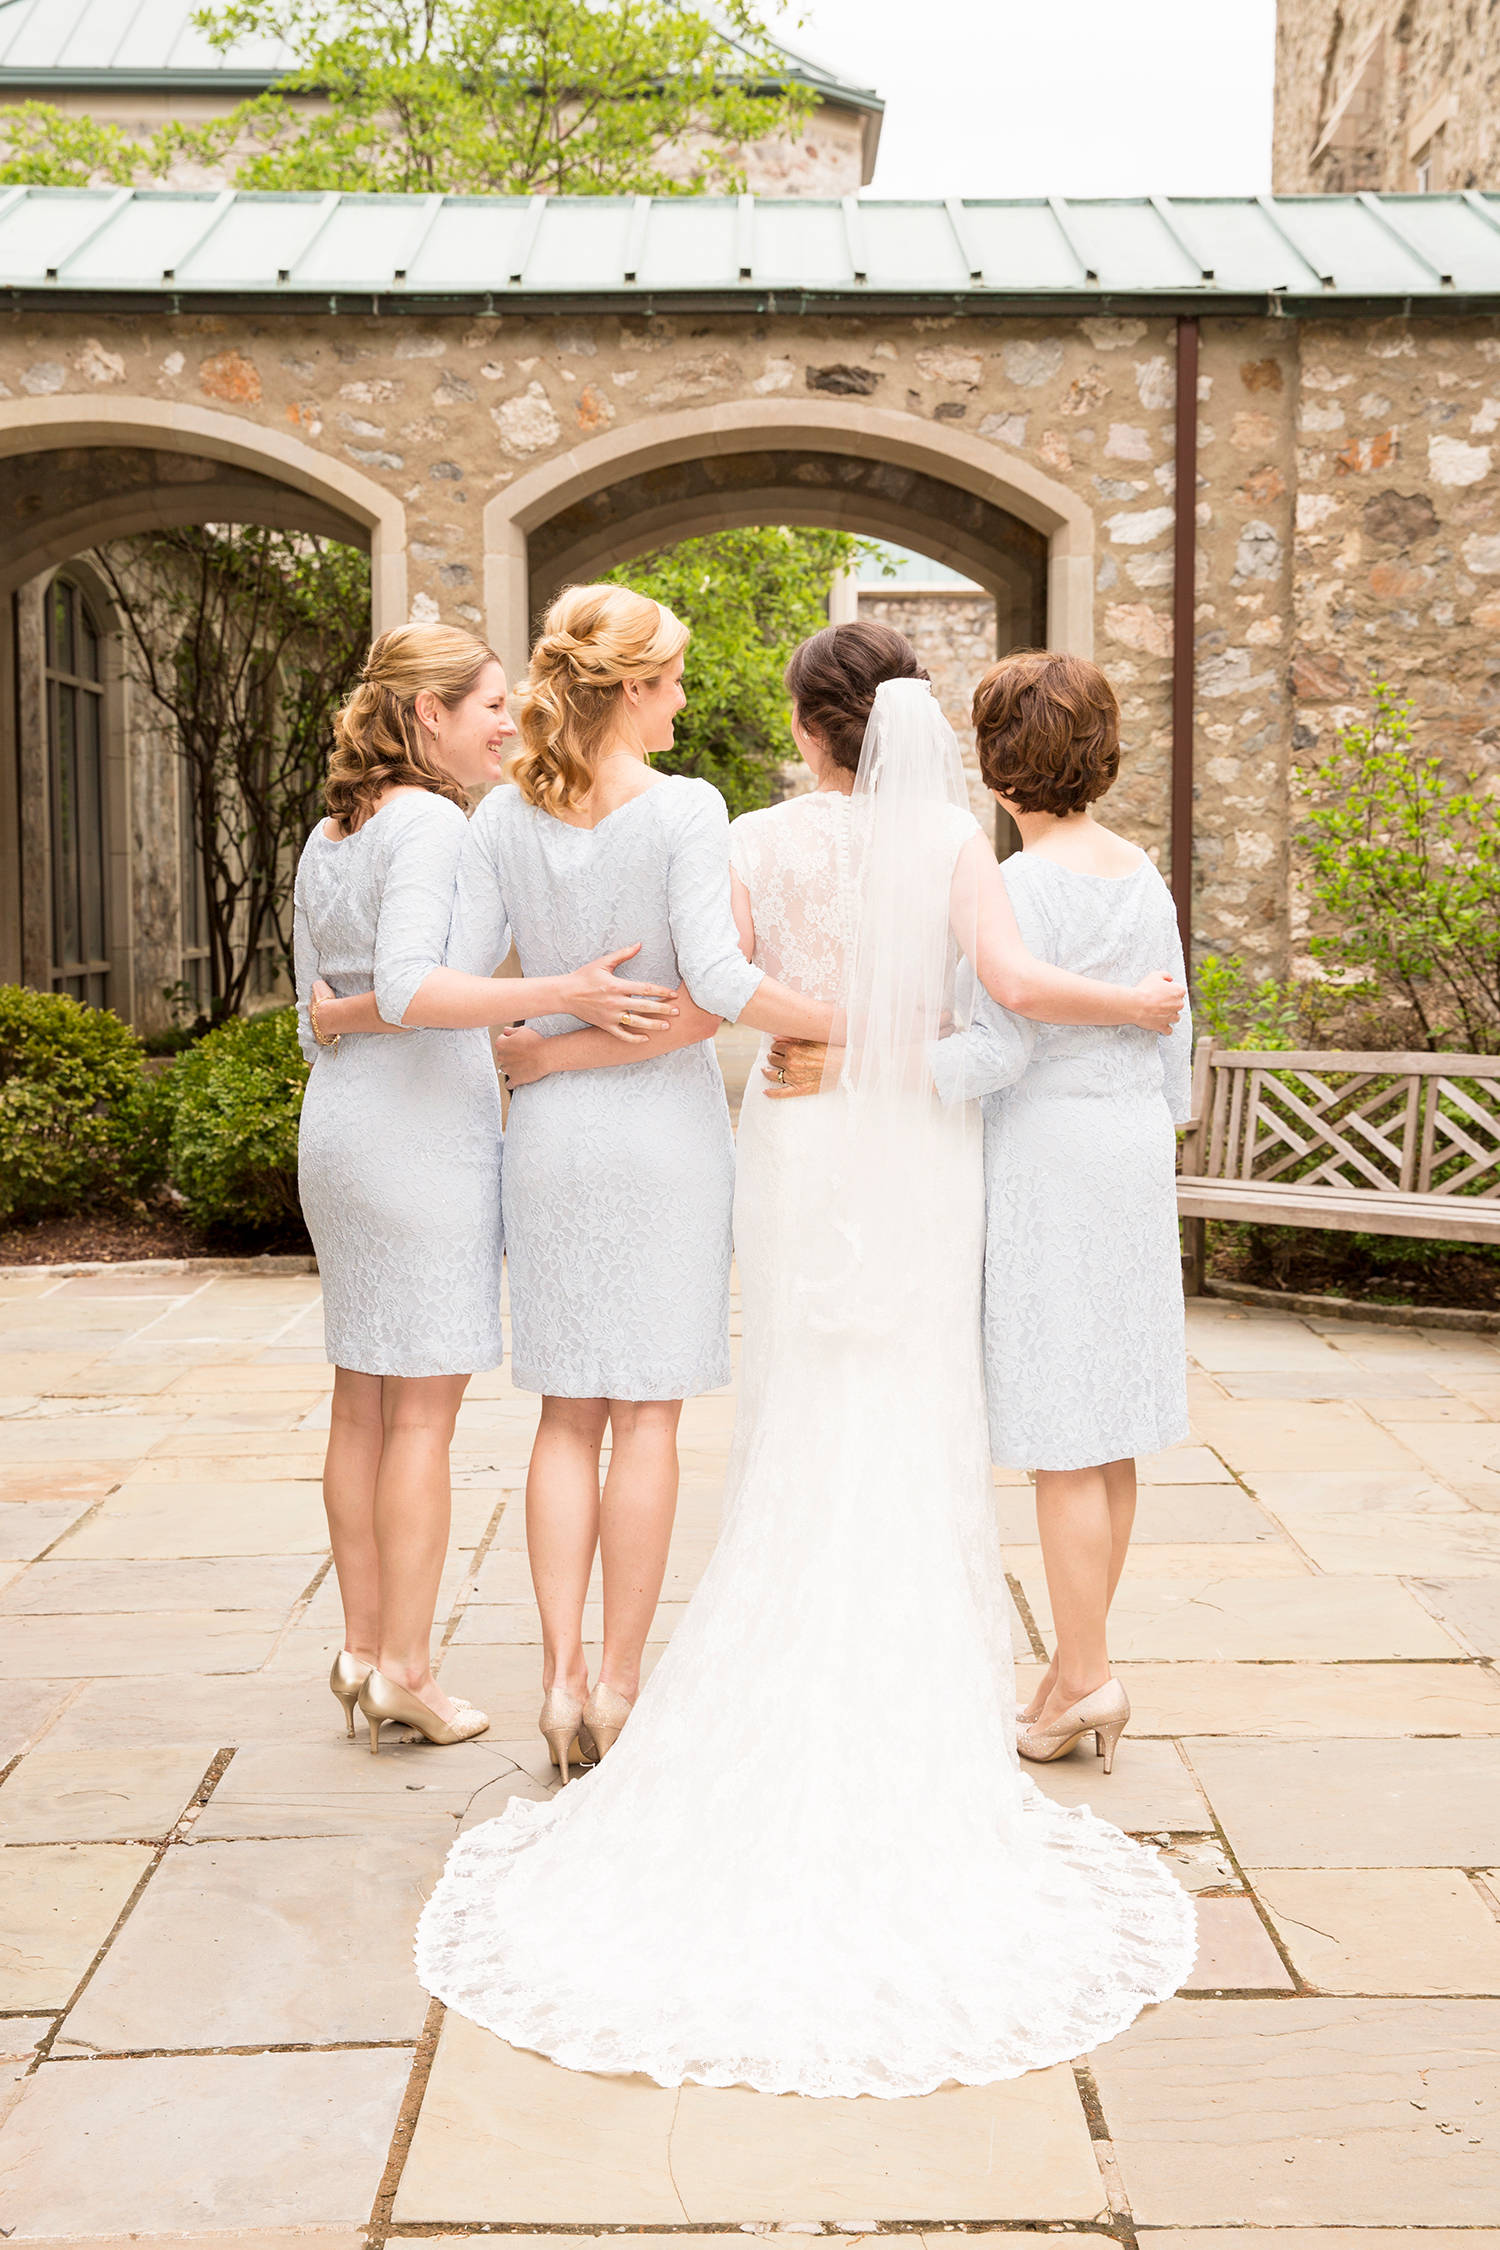 Best Places to Buy Bridesmaid Dresses - Image Property of www.j-dphoto.com